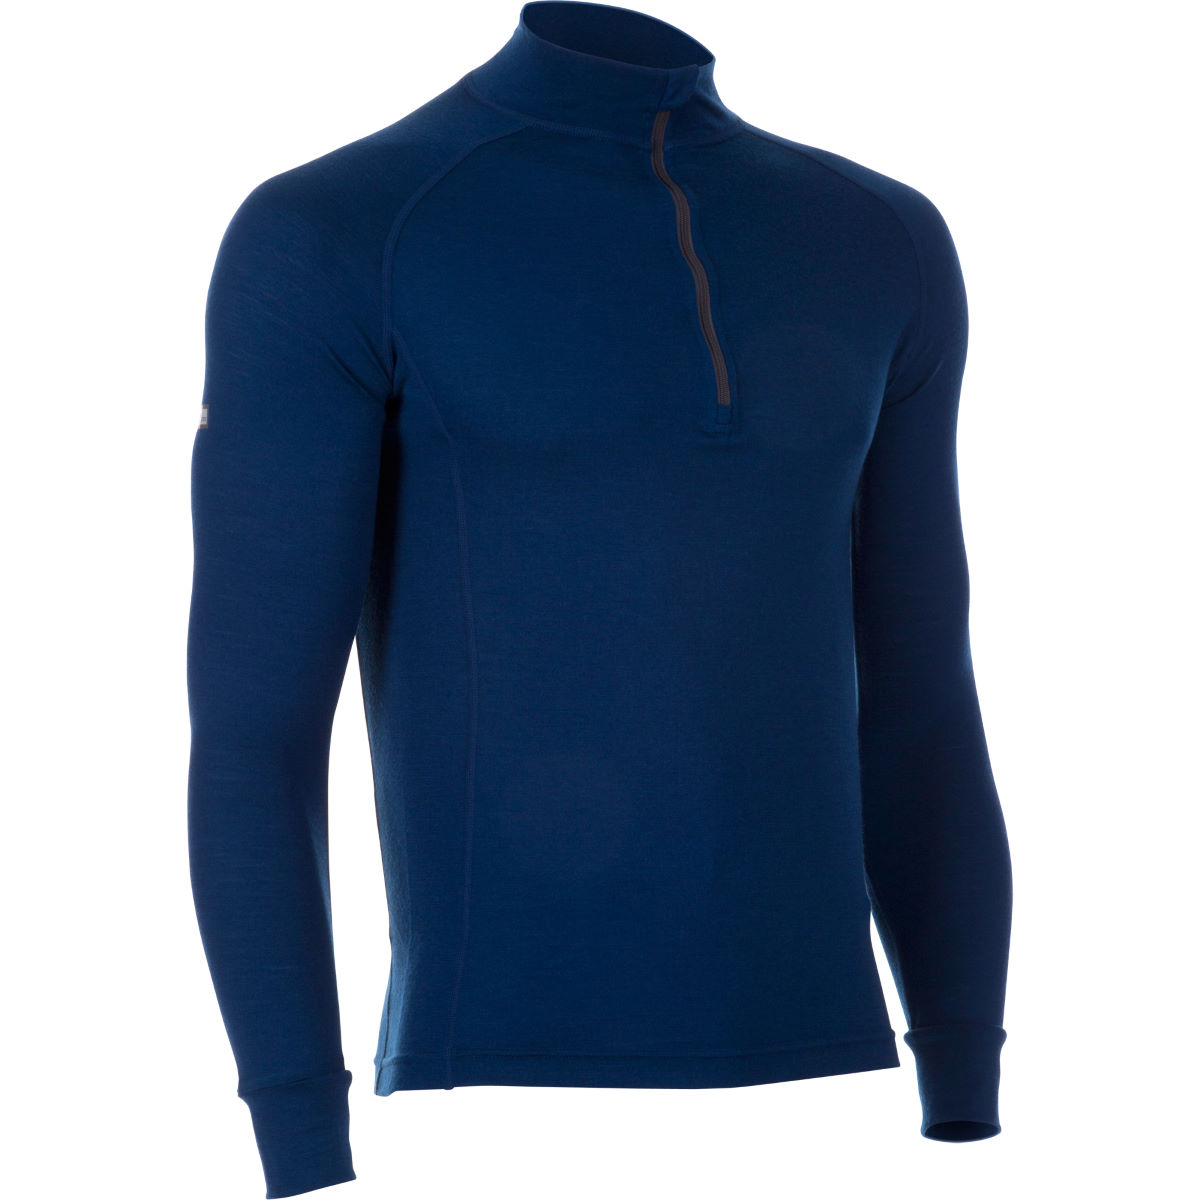 dhb Merino Zip Neck Base Layer (M_200)